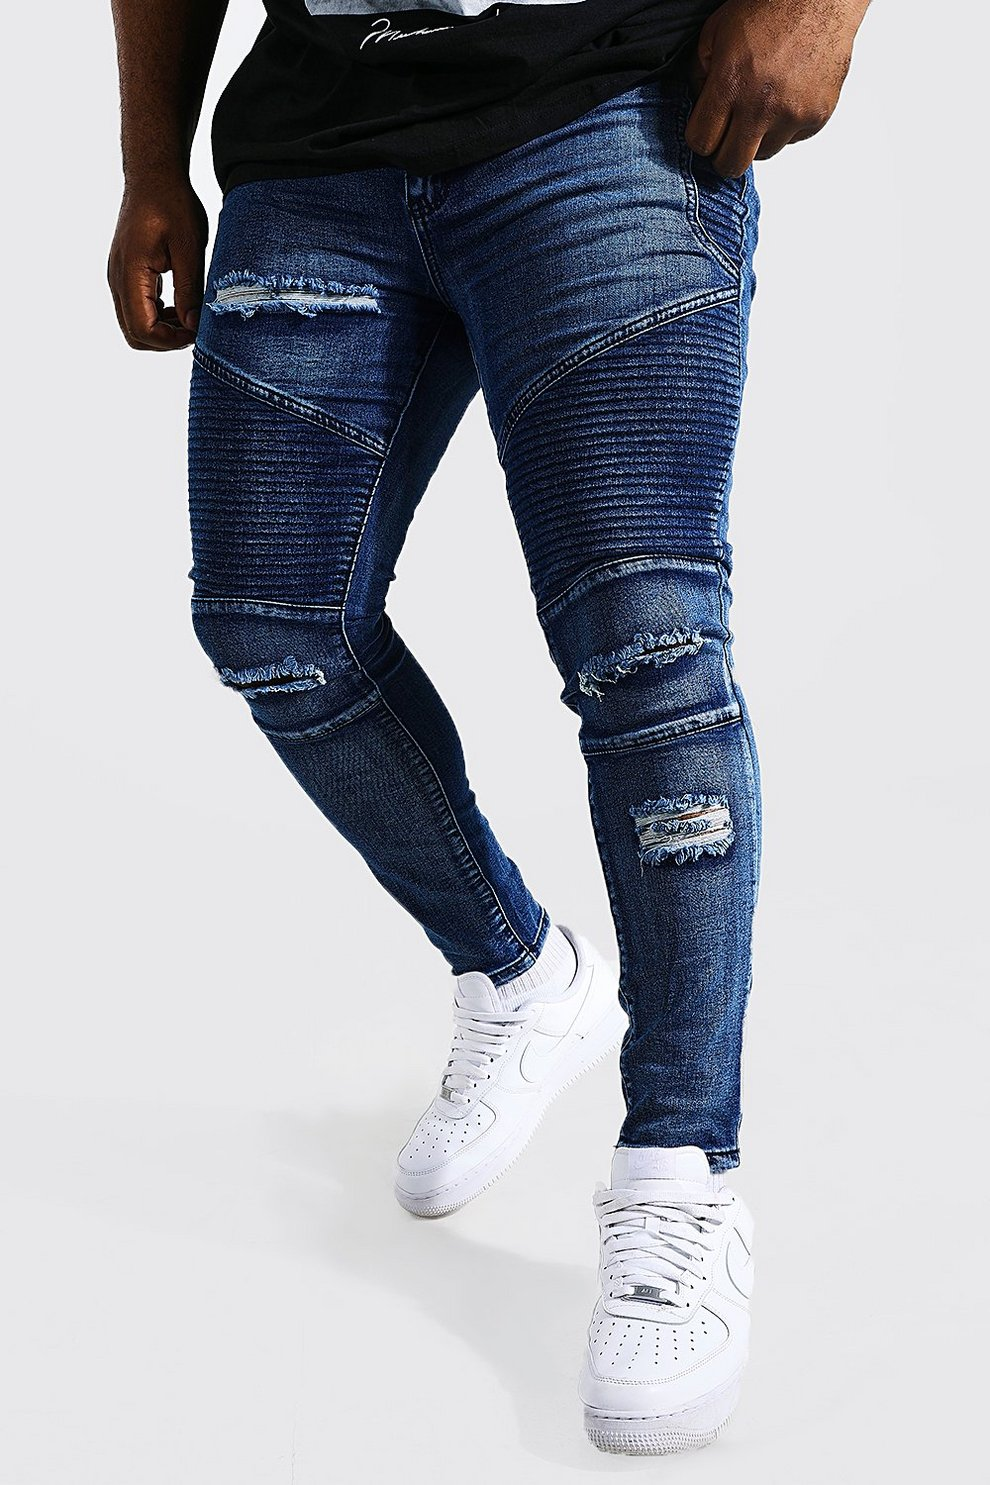 868e51f6 Mens Big And Tall Blue Skinny Fit Ripped Biker Jeans. Hover to zoom